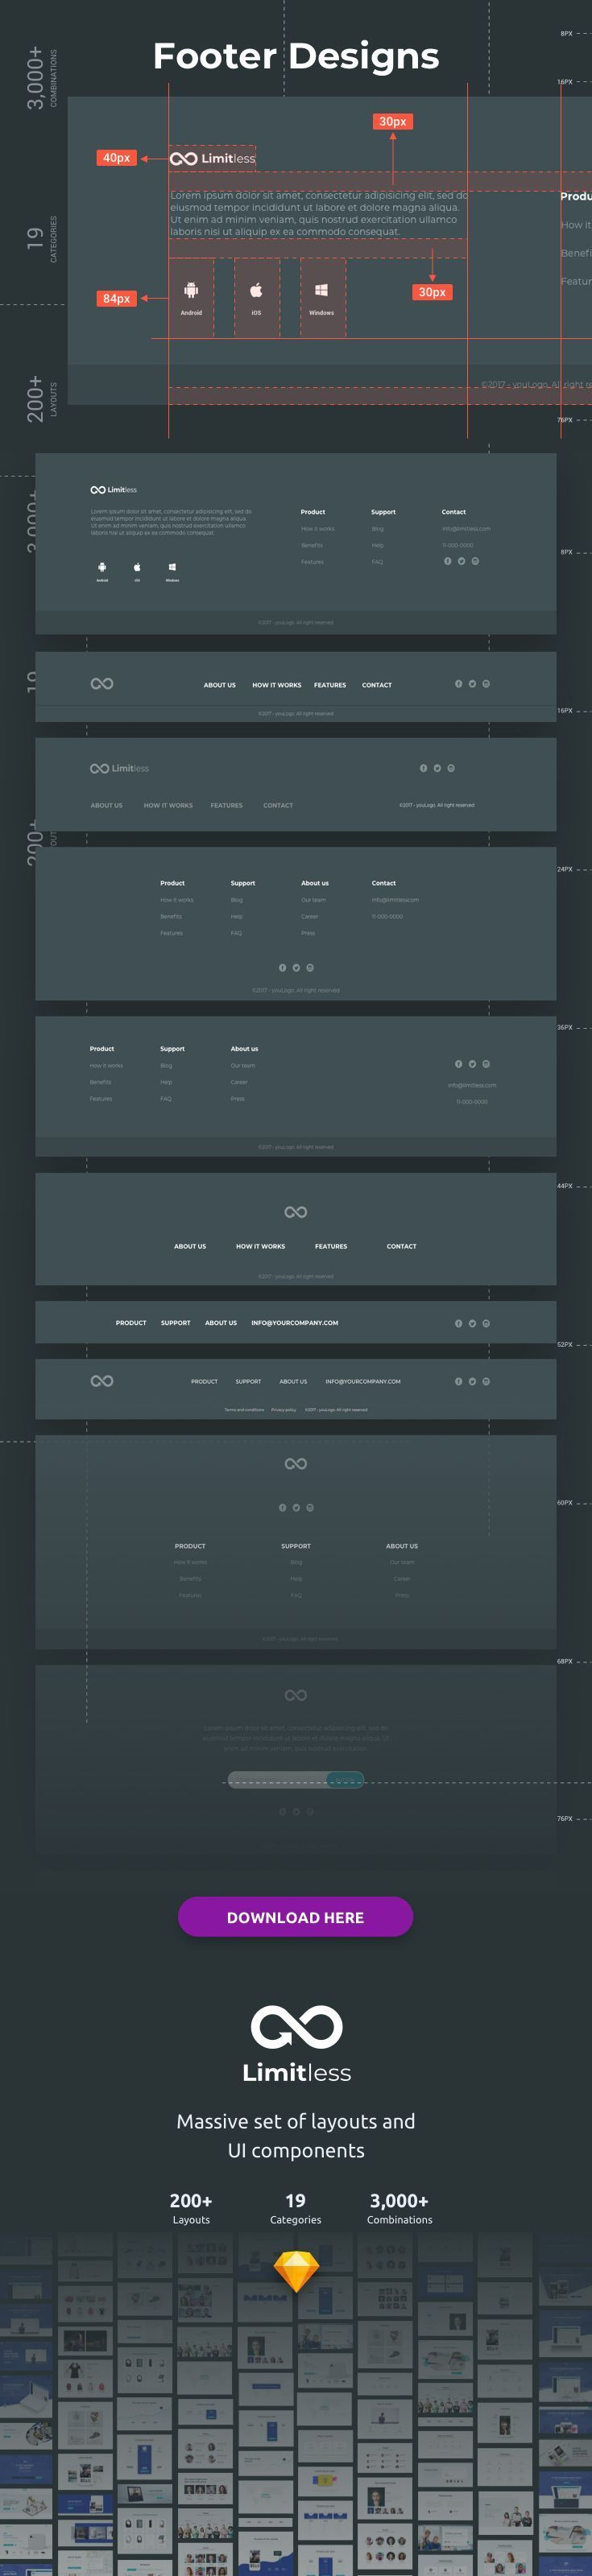 Limitless Web Design Projects Web Layout Design Footer Design